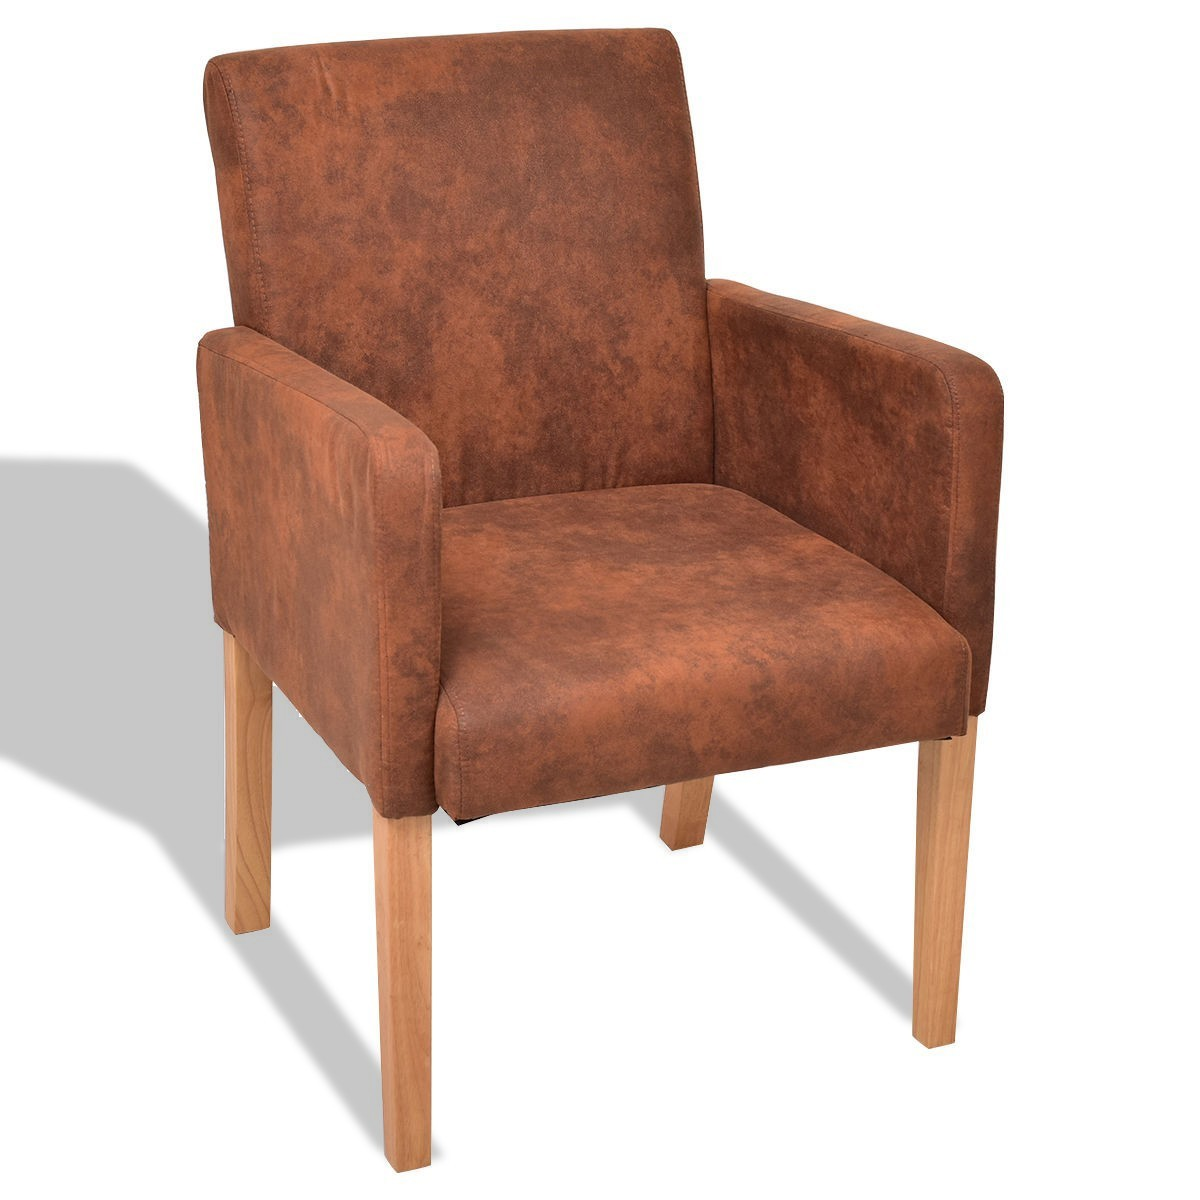 Brown Fabric Armrest Dining Chair - Brown